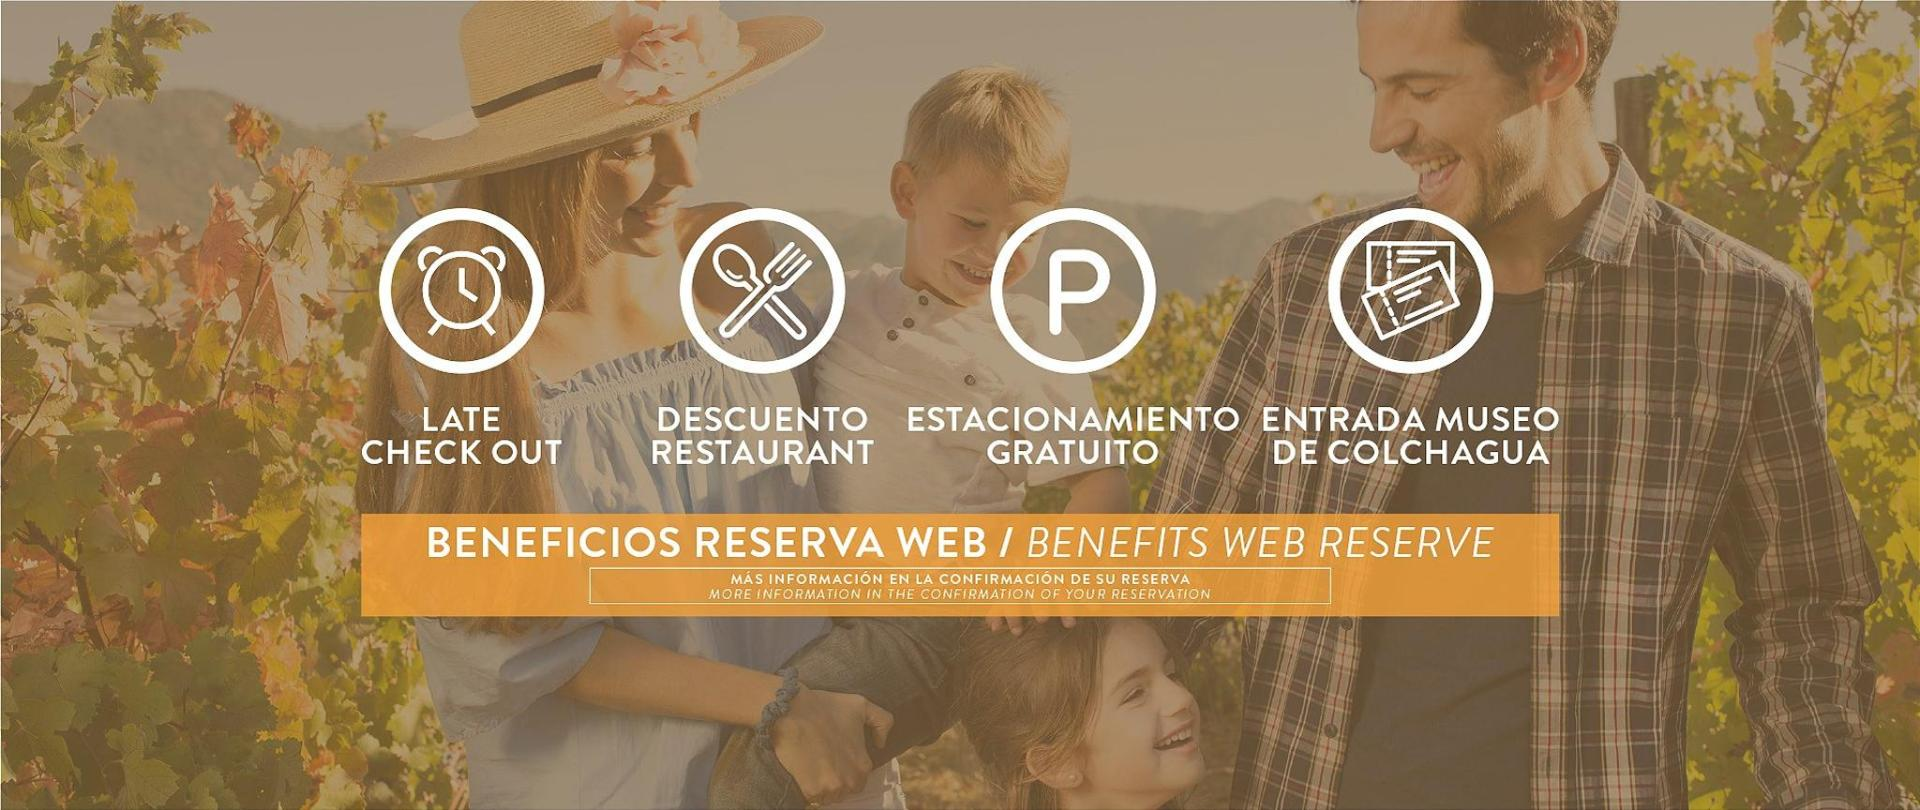 Banner beneficios Web- hscp.jpg